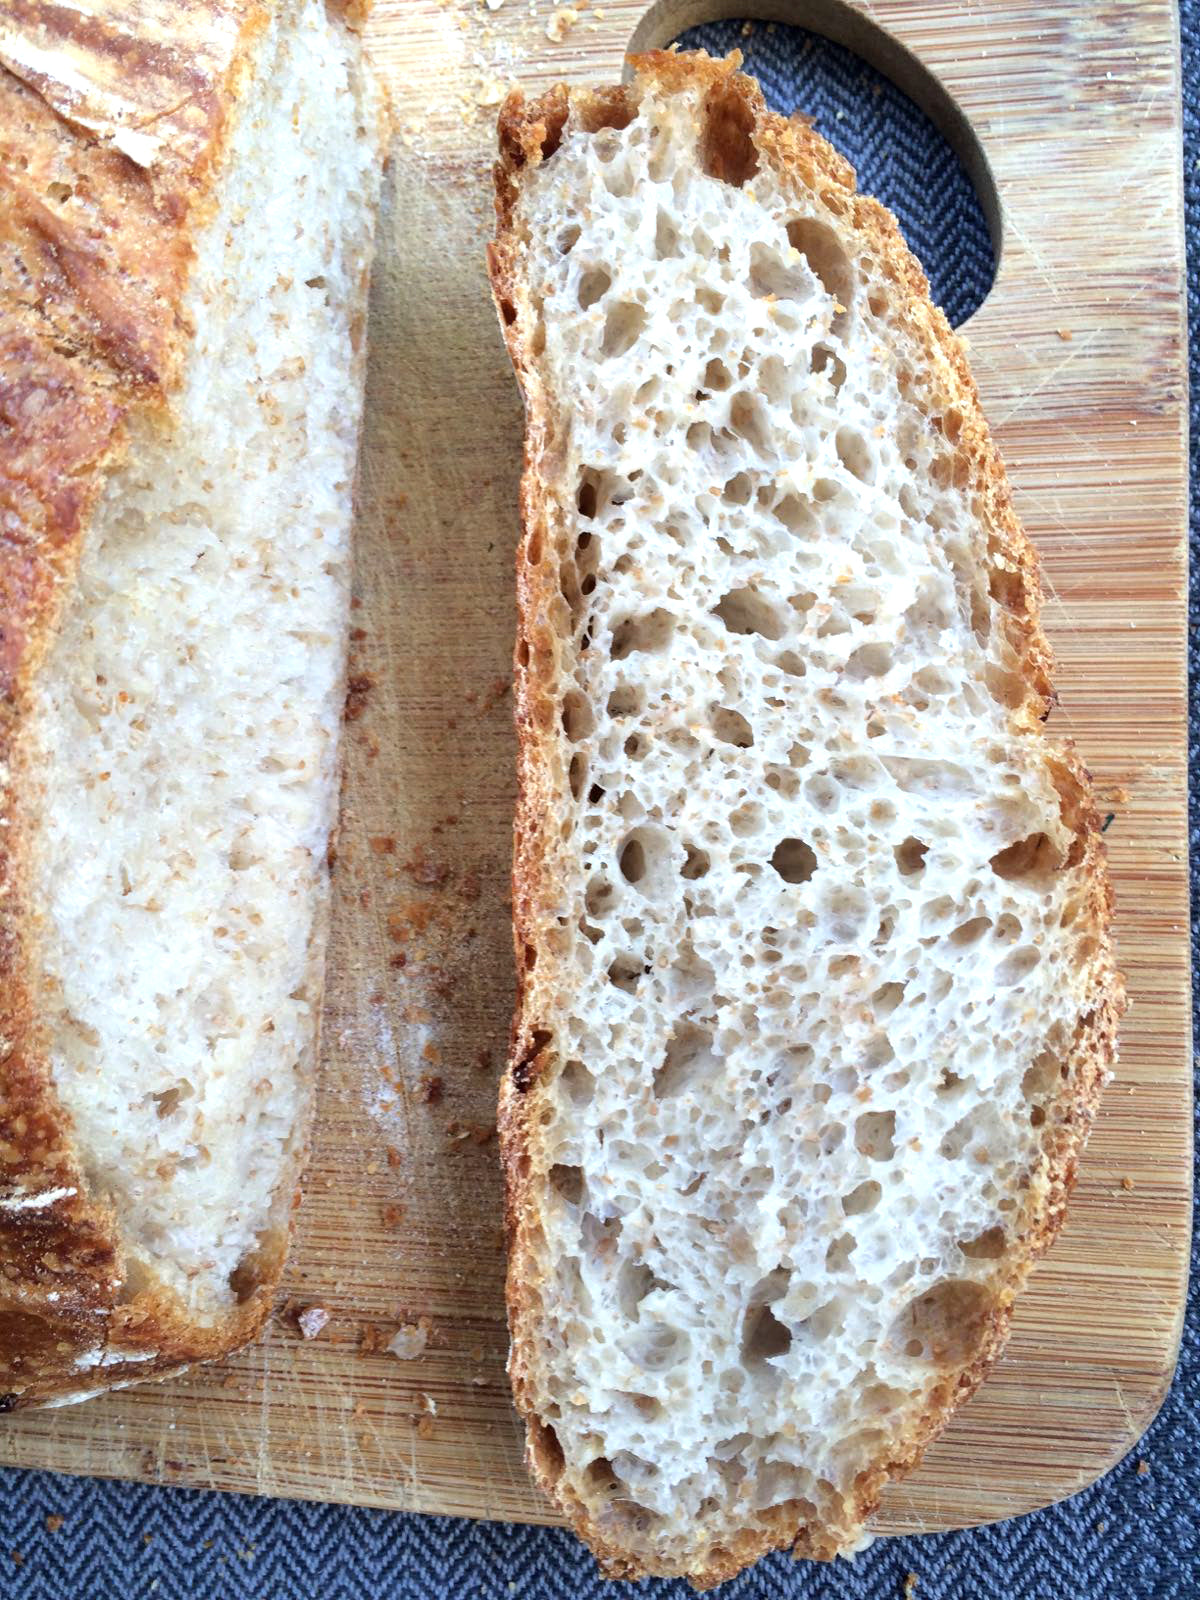 We hand make our own sourdough bread when the hectic time in the studio allows